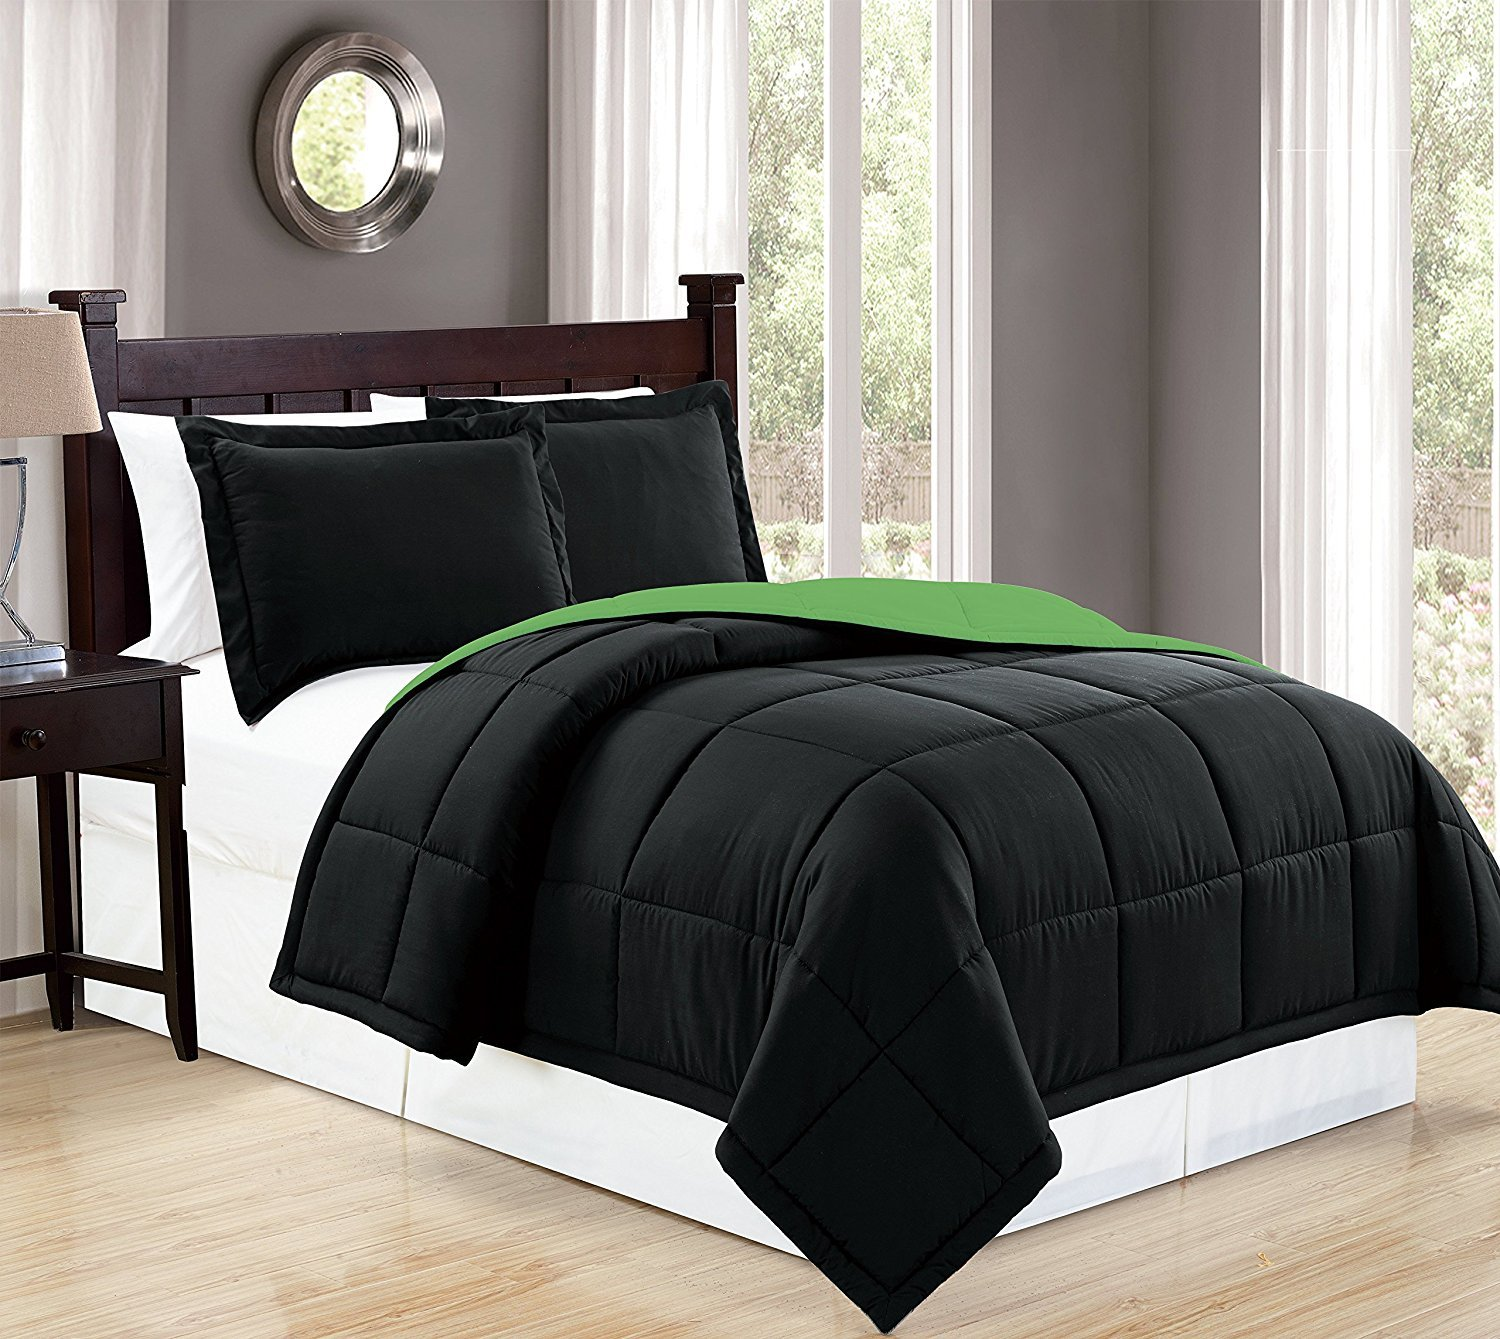 Fancy Collection 2pc Twin Size Comforter Set Down Alternative Reversible Solid Black/Lime Green New #Down Alternative Black/Lime Green